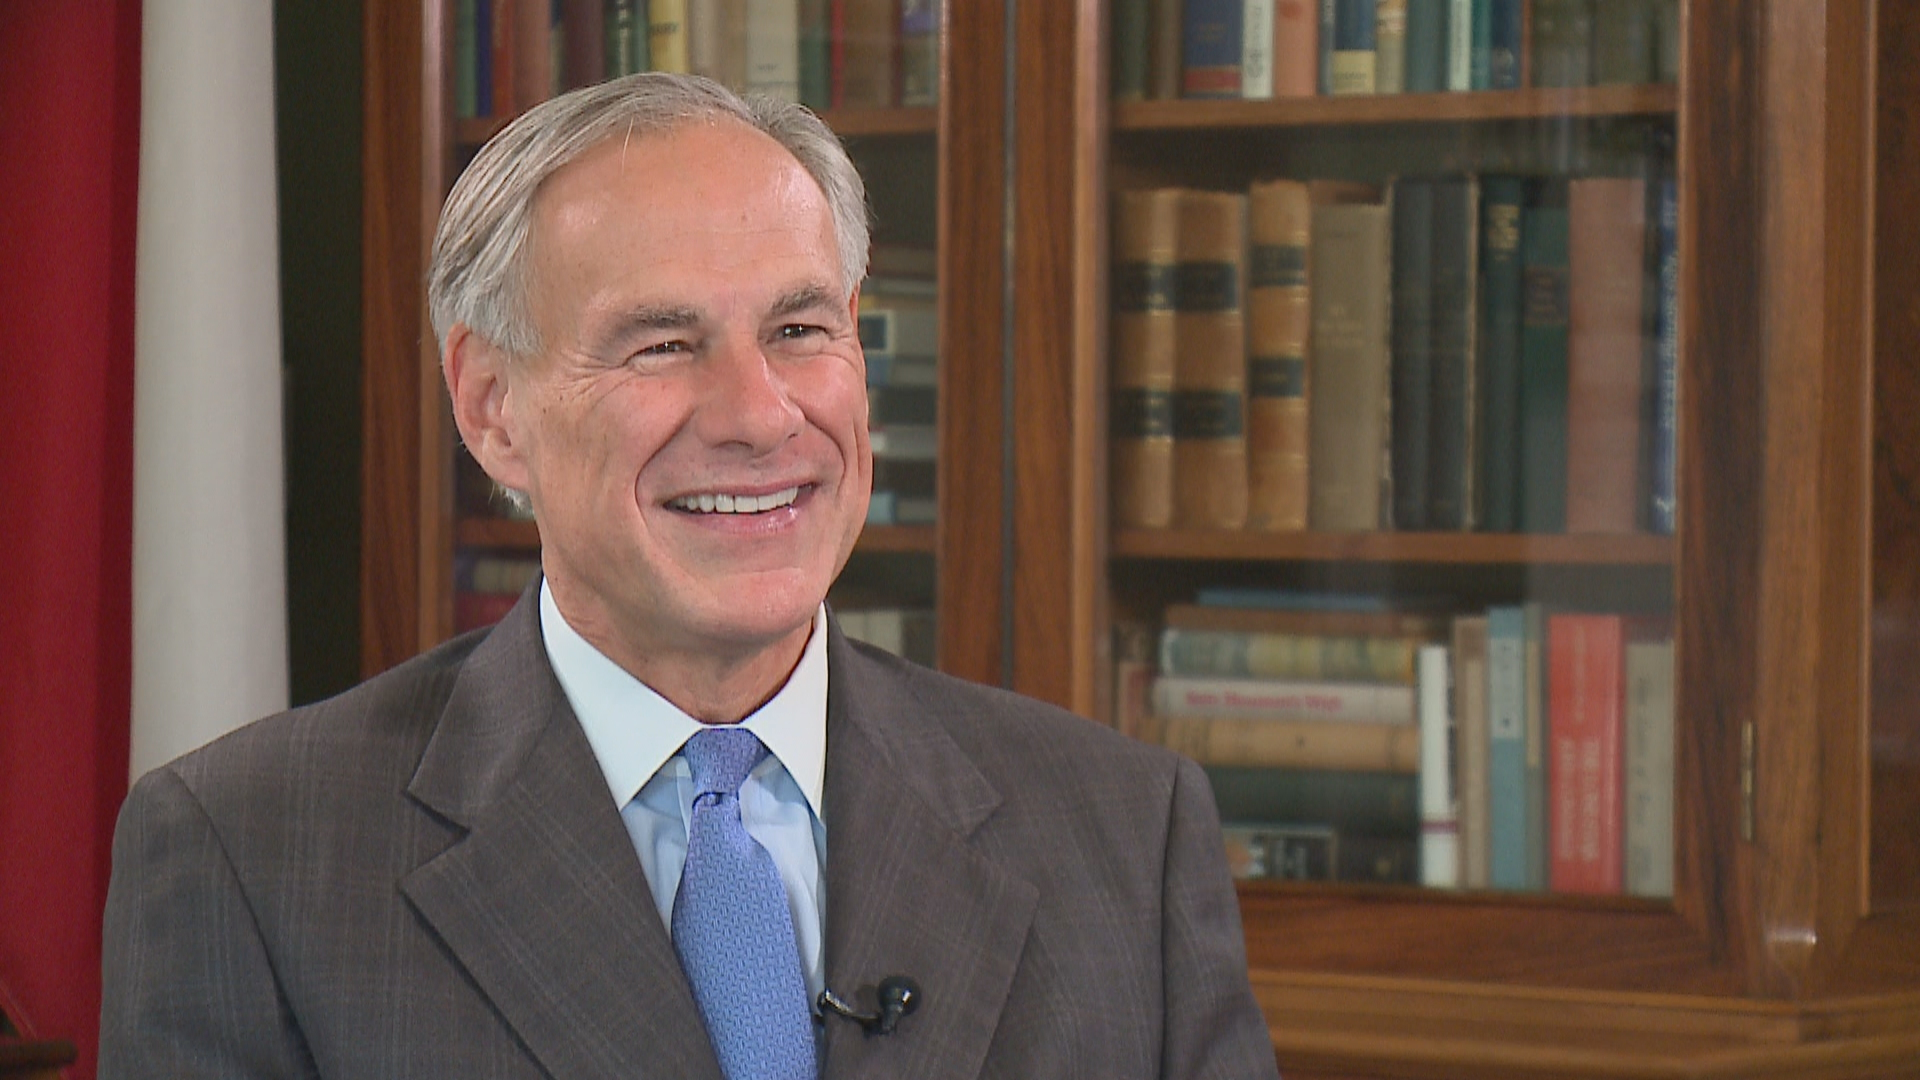 Greg Abbott interview